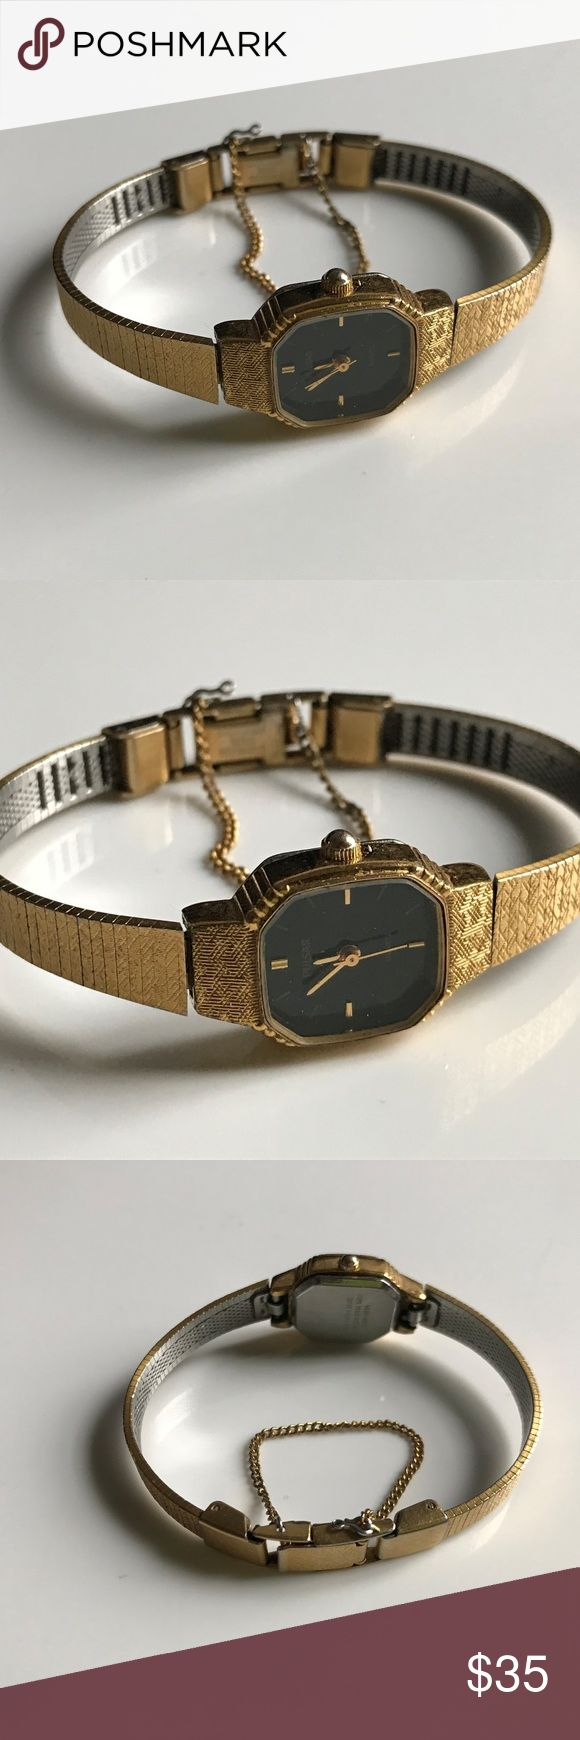 Pulsar Women Gold Watch Quartz Hand Winding Vintag Pulsar Women Gold Watch Quartz Hand Winding Vintage Analog Wrist Watch  Brand: Pulsar  Color: Gold  Size: 5  Hand winding  Pre-owned: used and working condition. fully functional. Band is little loose from one and I don't know how to fix the time. Pulsar Accessories Watches